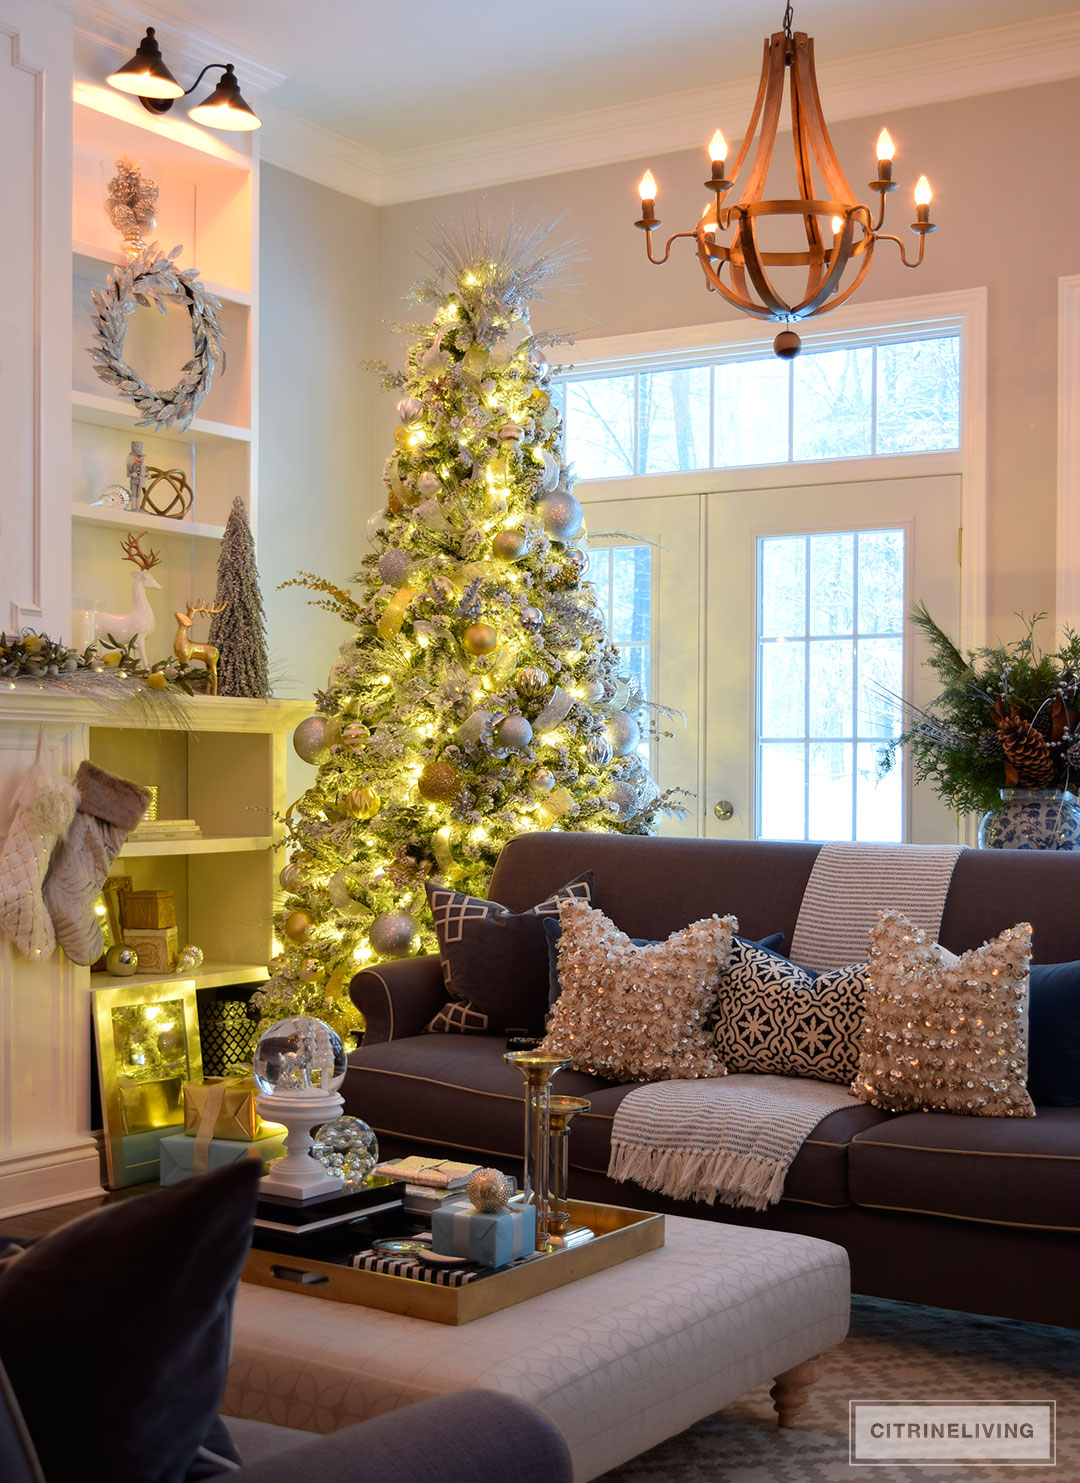 flocked-christmas-tree-nighttime-living-room2